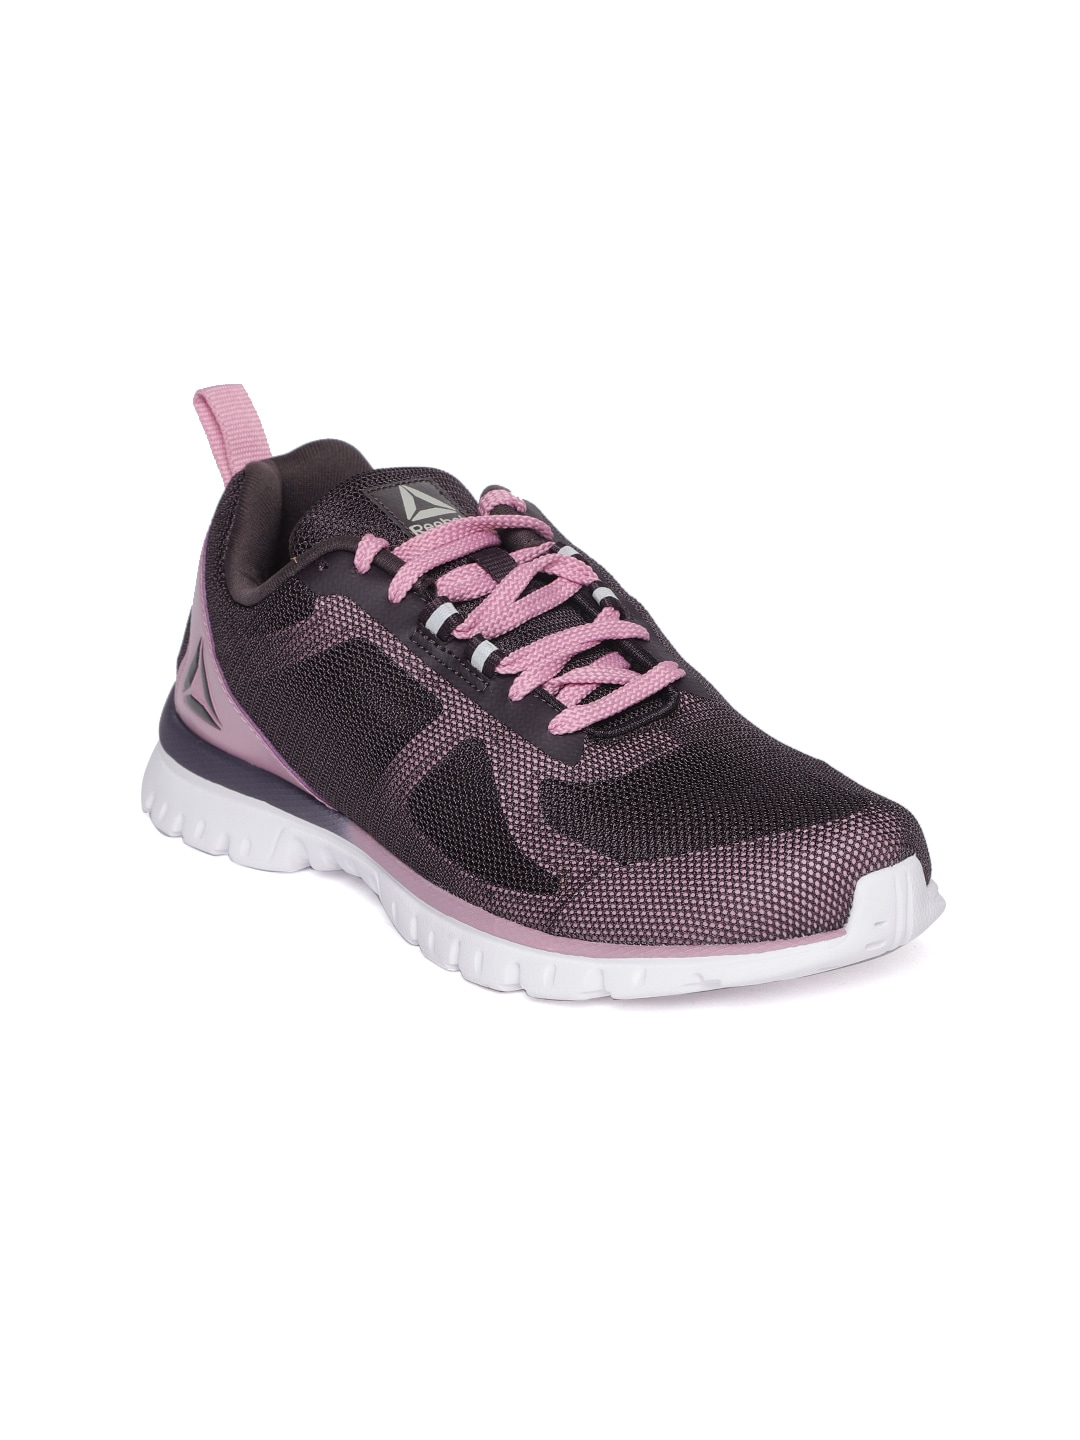 Clothing, Shoes & Accessories Fabric Flyer Runner Trainers Womens Athleisure Sneakers Shoes Footwear Good Taste